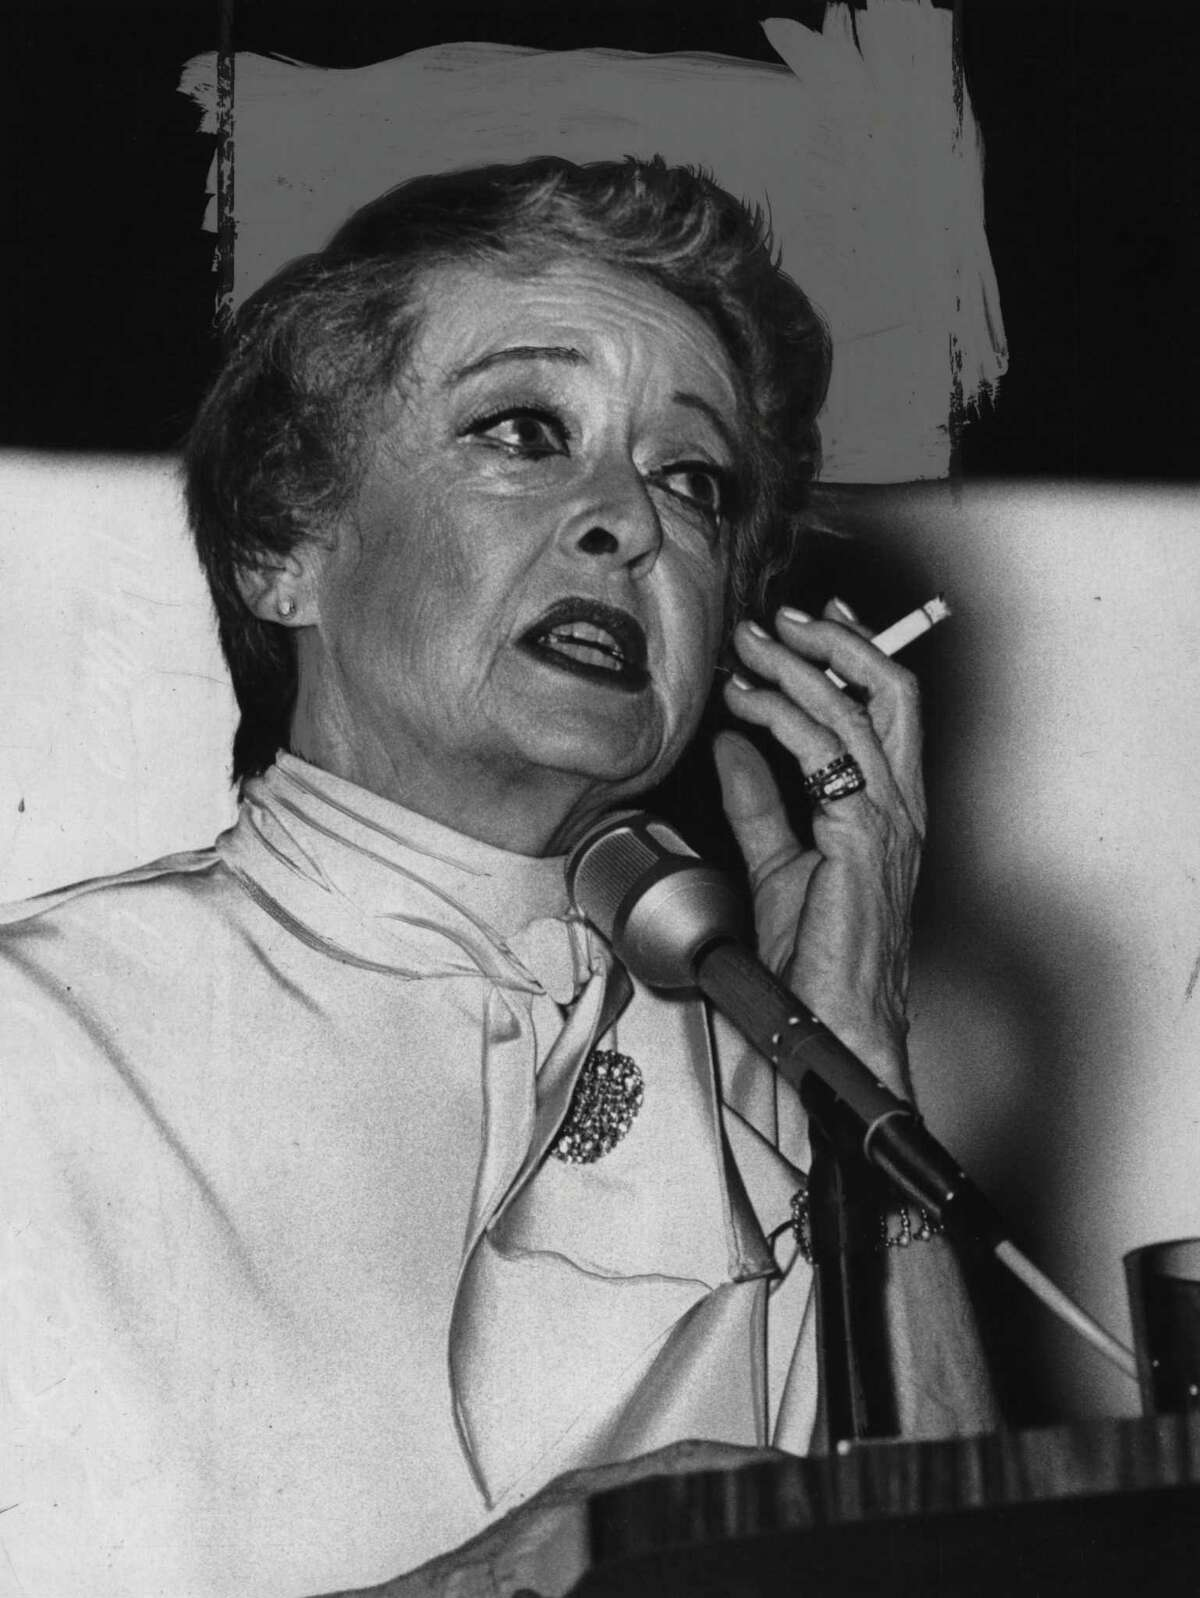 On this week in 1973, actress Bette Davis smokes during speech in Saratoga Springs. June 21, 1973. (Times Union archive)